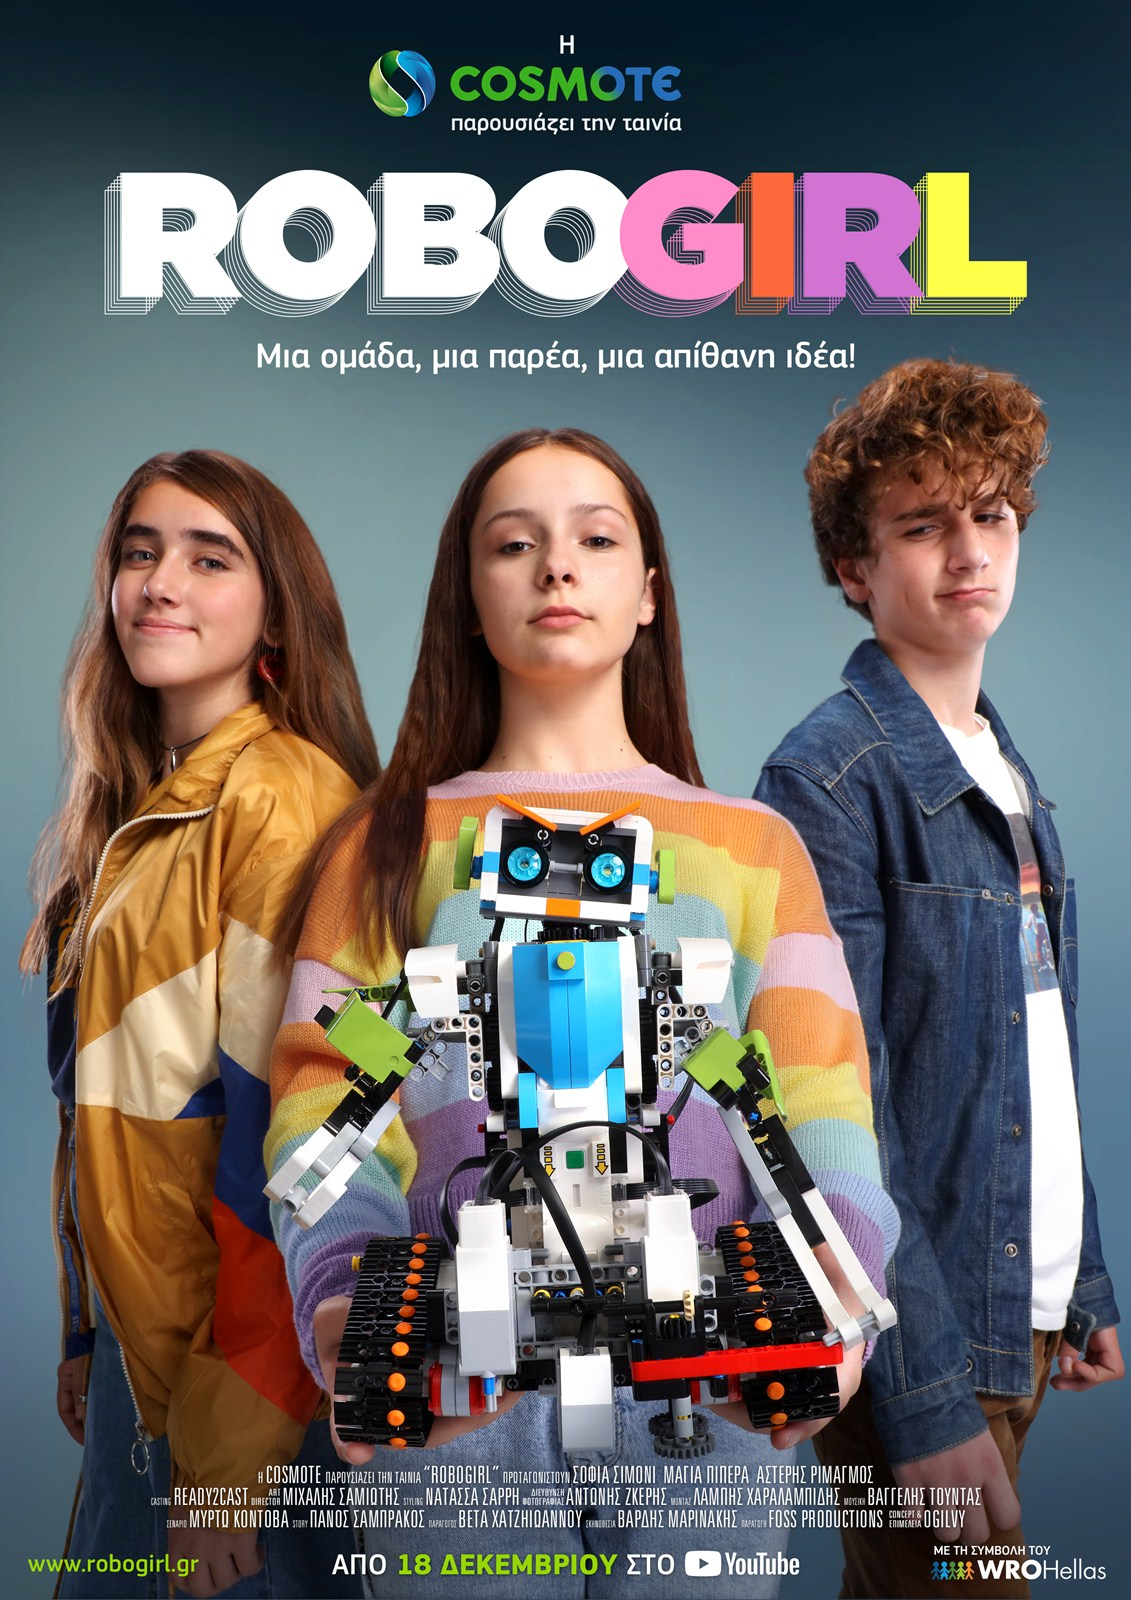 ROBOGIRL POSTER COSMOTE